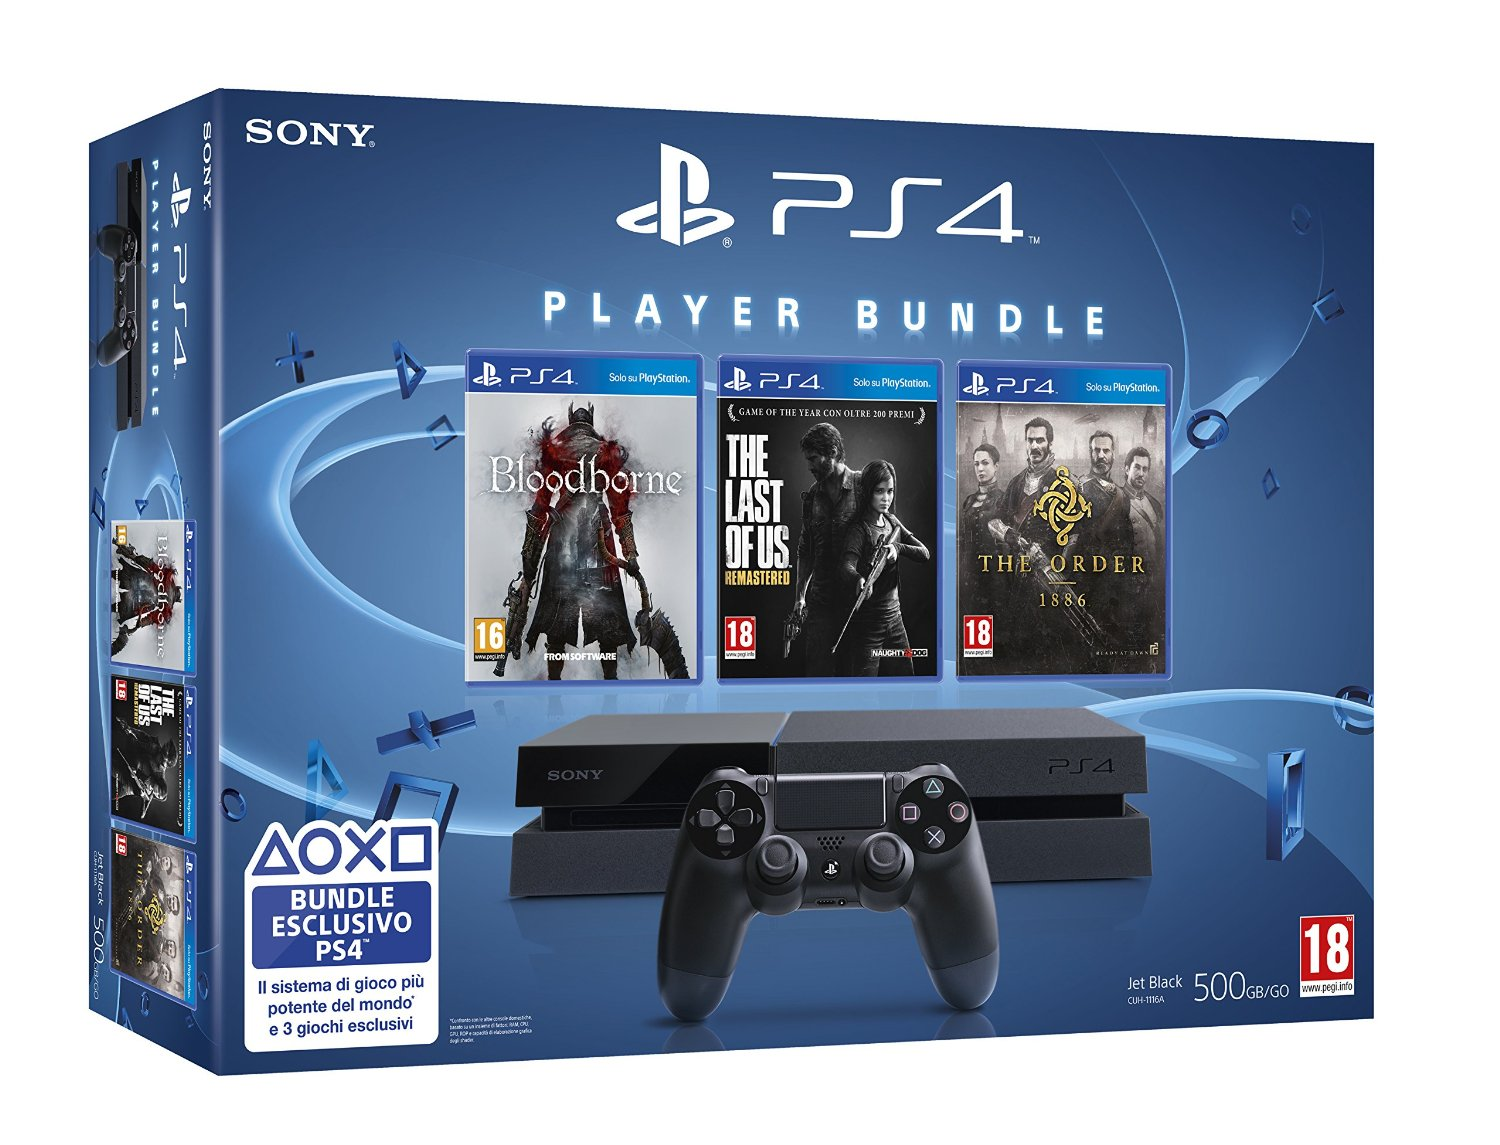 PlayStation 4 Bundle mit Bloodborne, The Order 1886 und The Last of Us